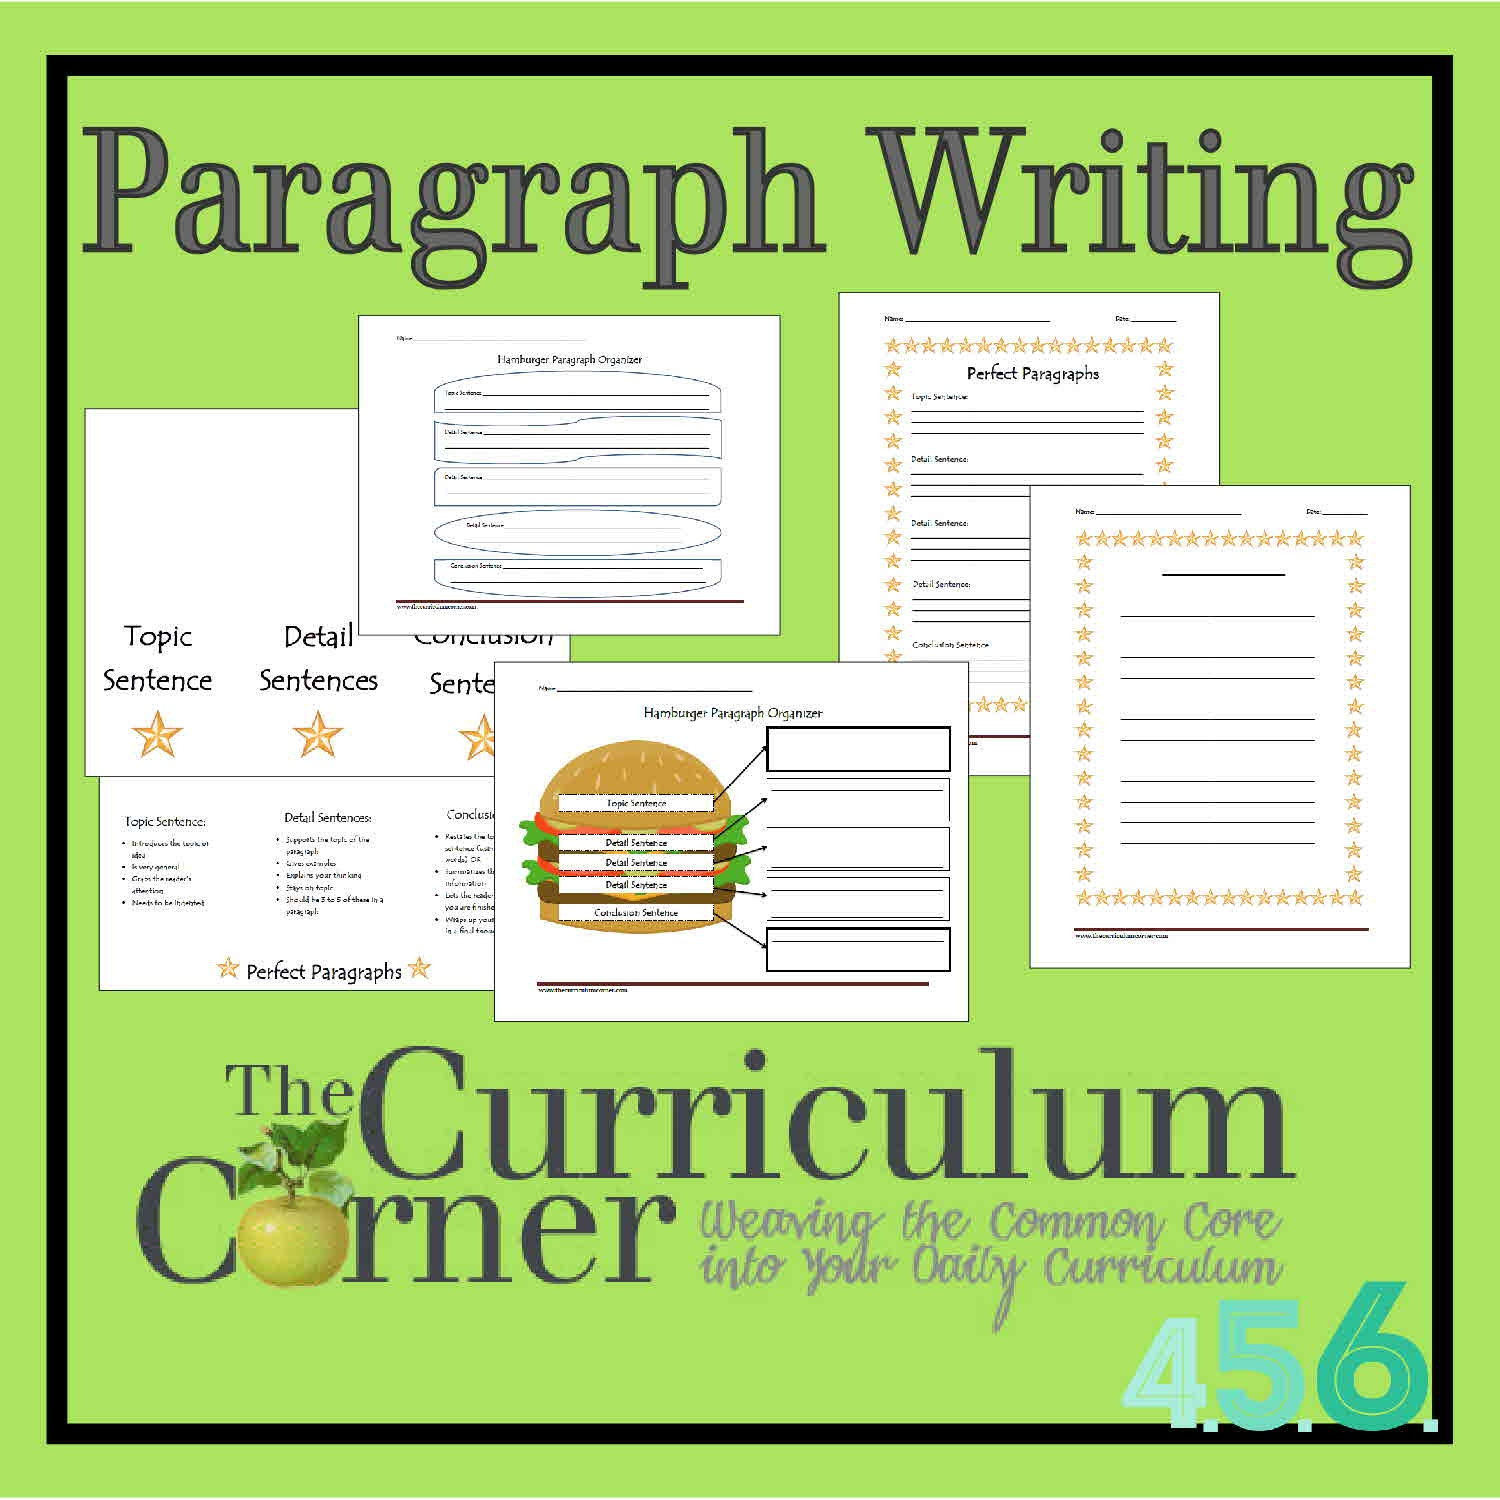 Paragraph Writing - The Curriculum Corner 4-5-6 - 6Th Grade Writing Worksheets Printable Free